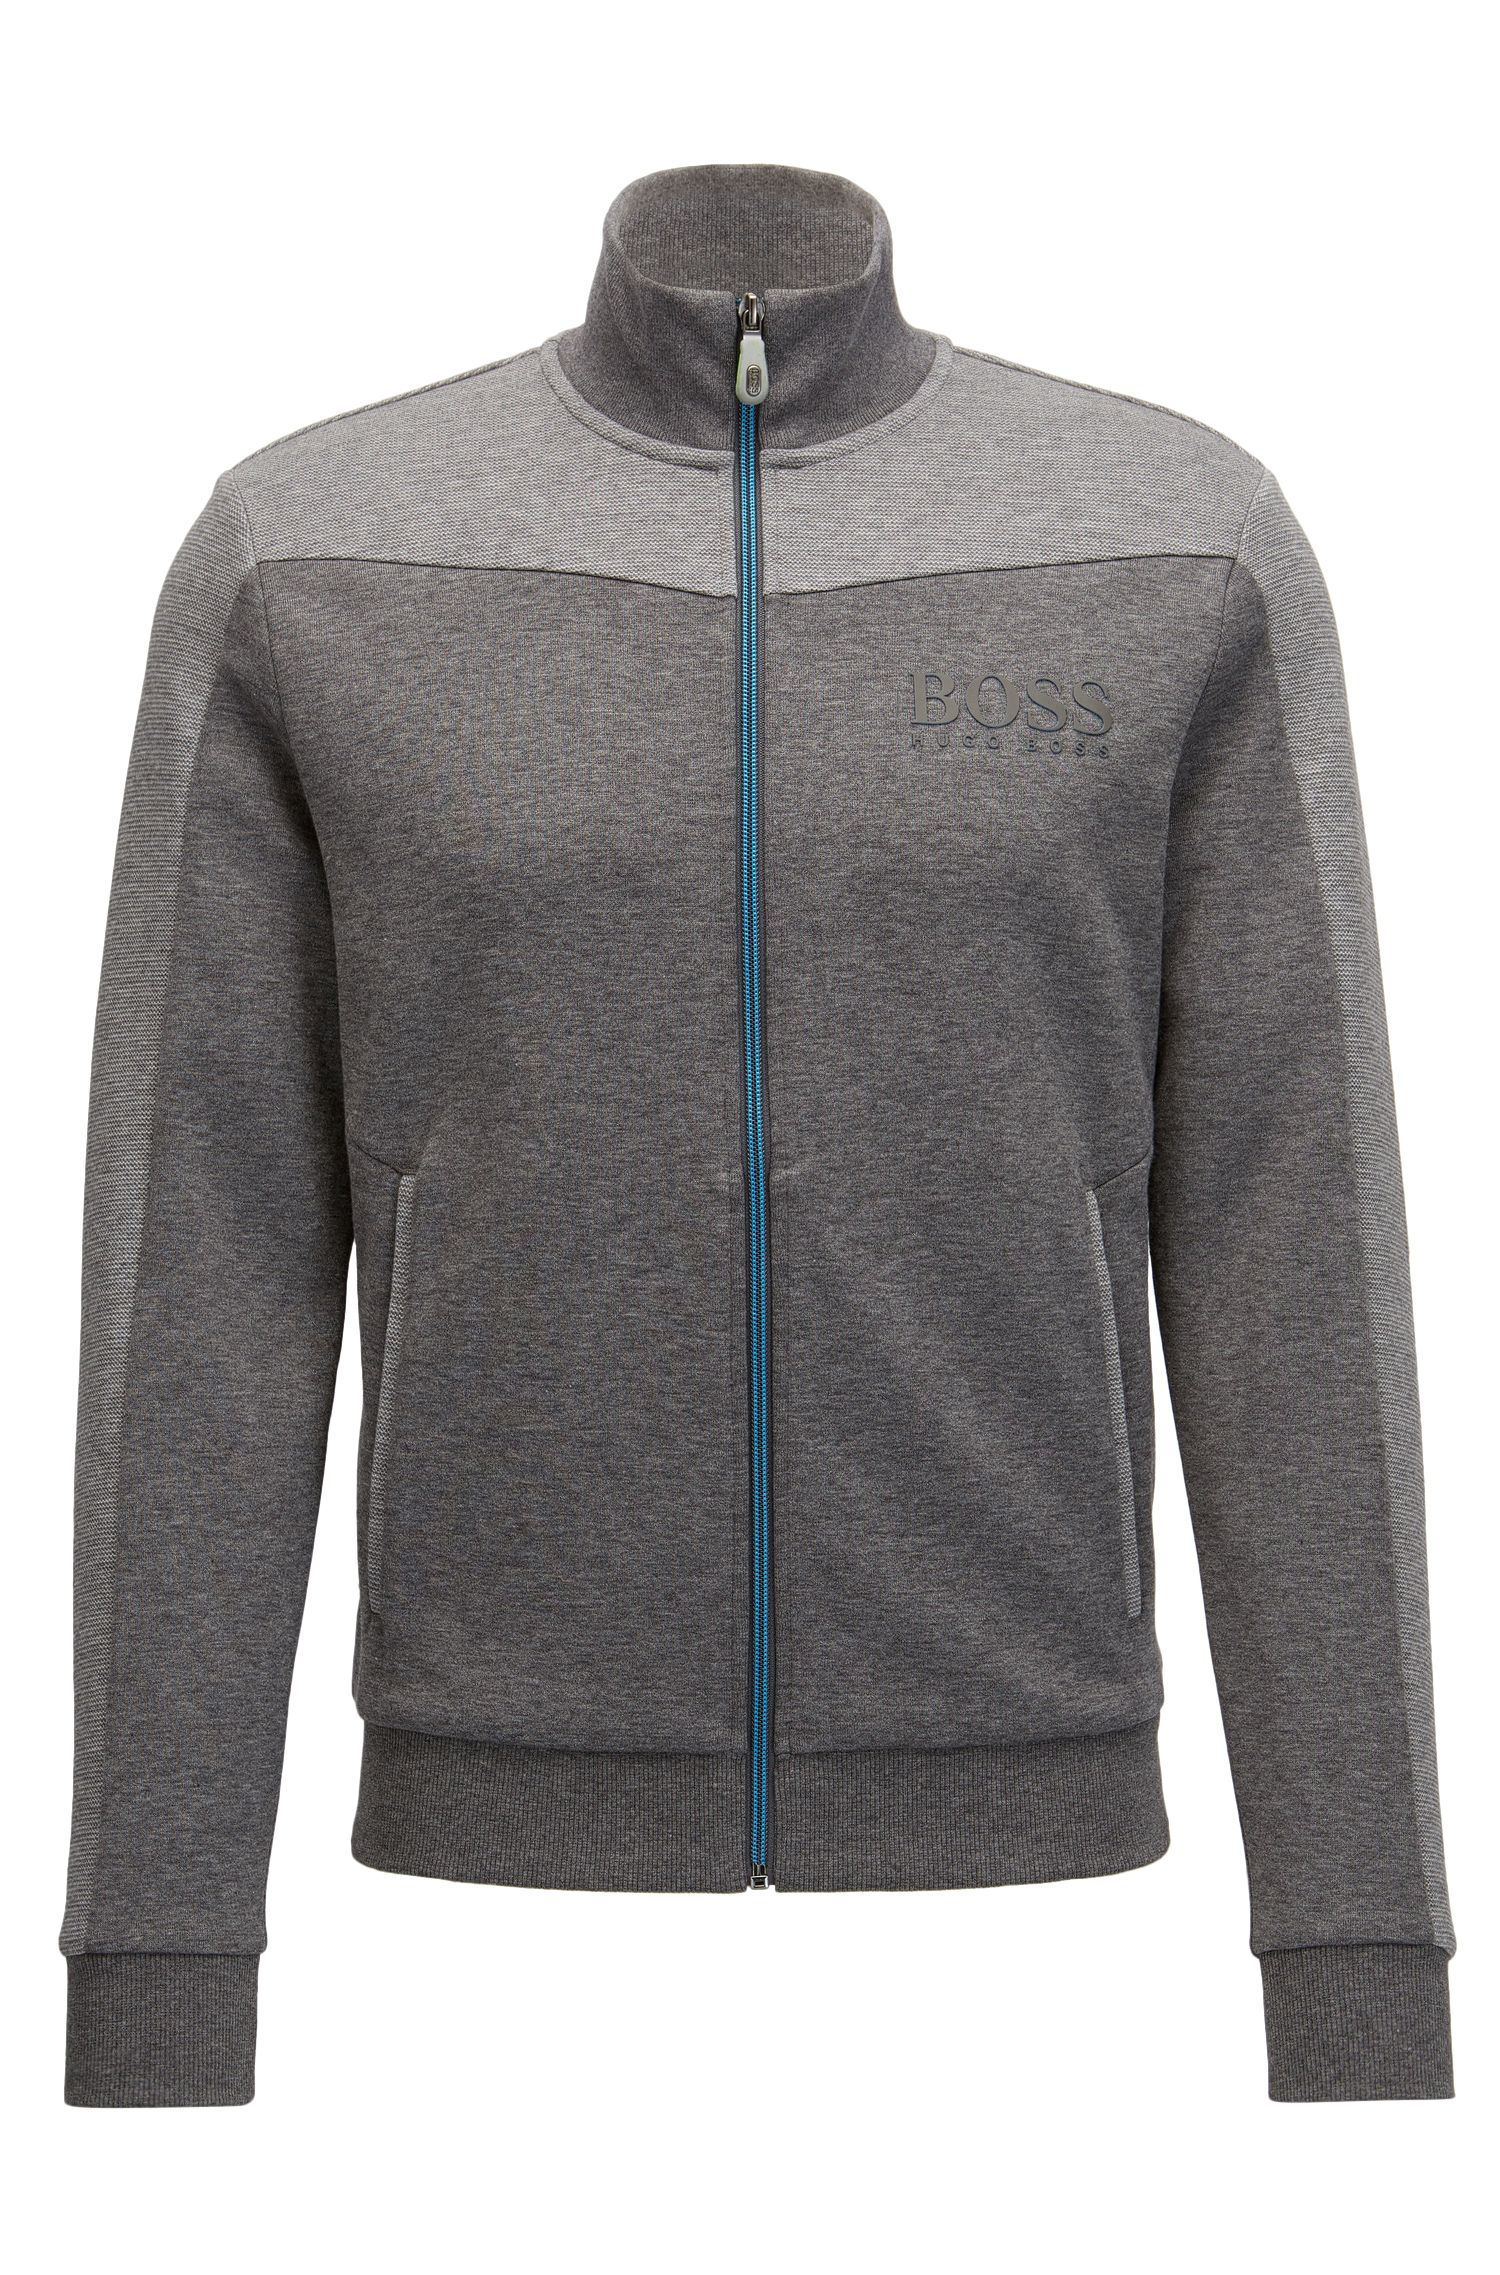 Regular-fit jacket in a cotton blend